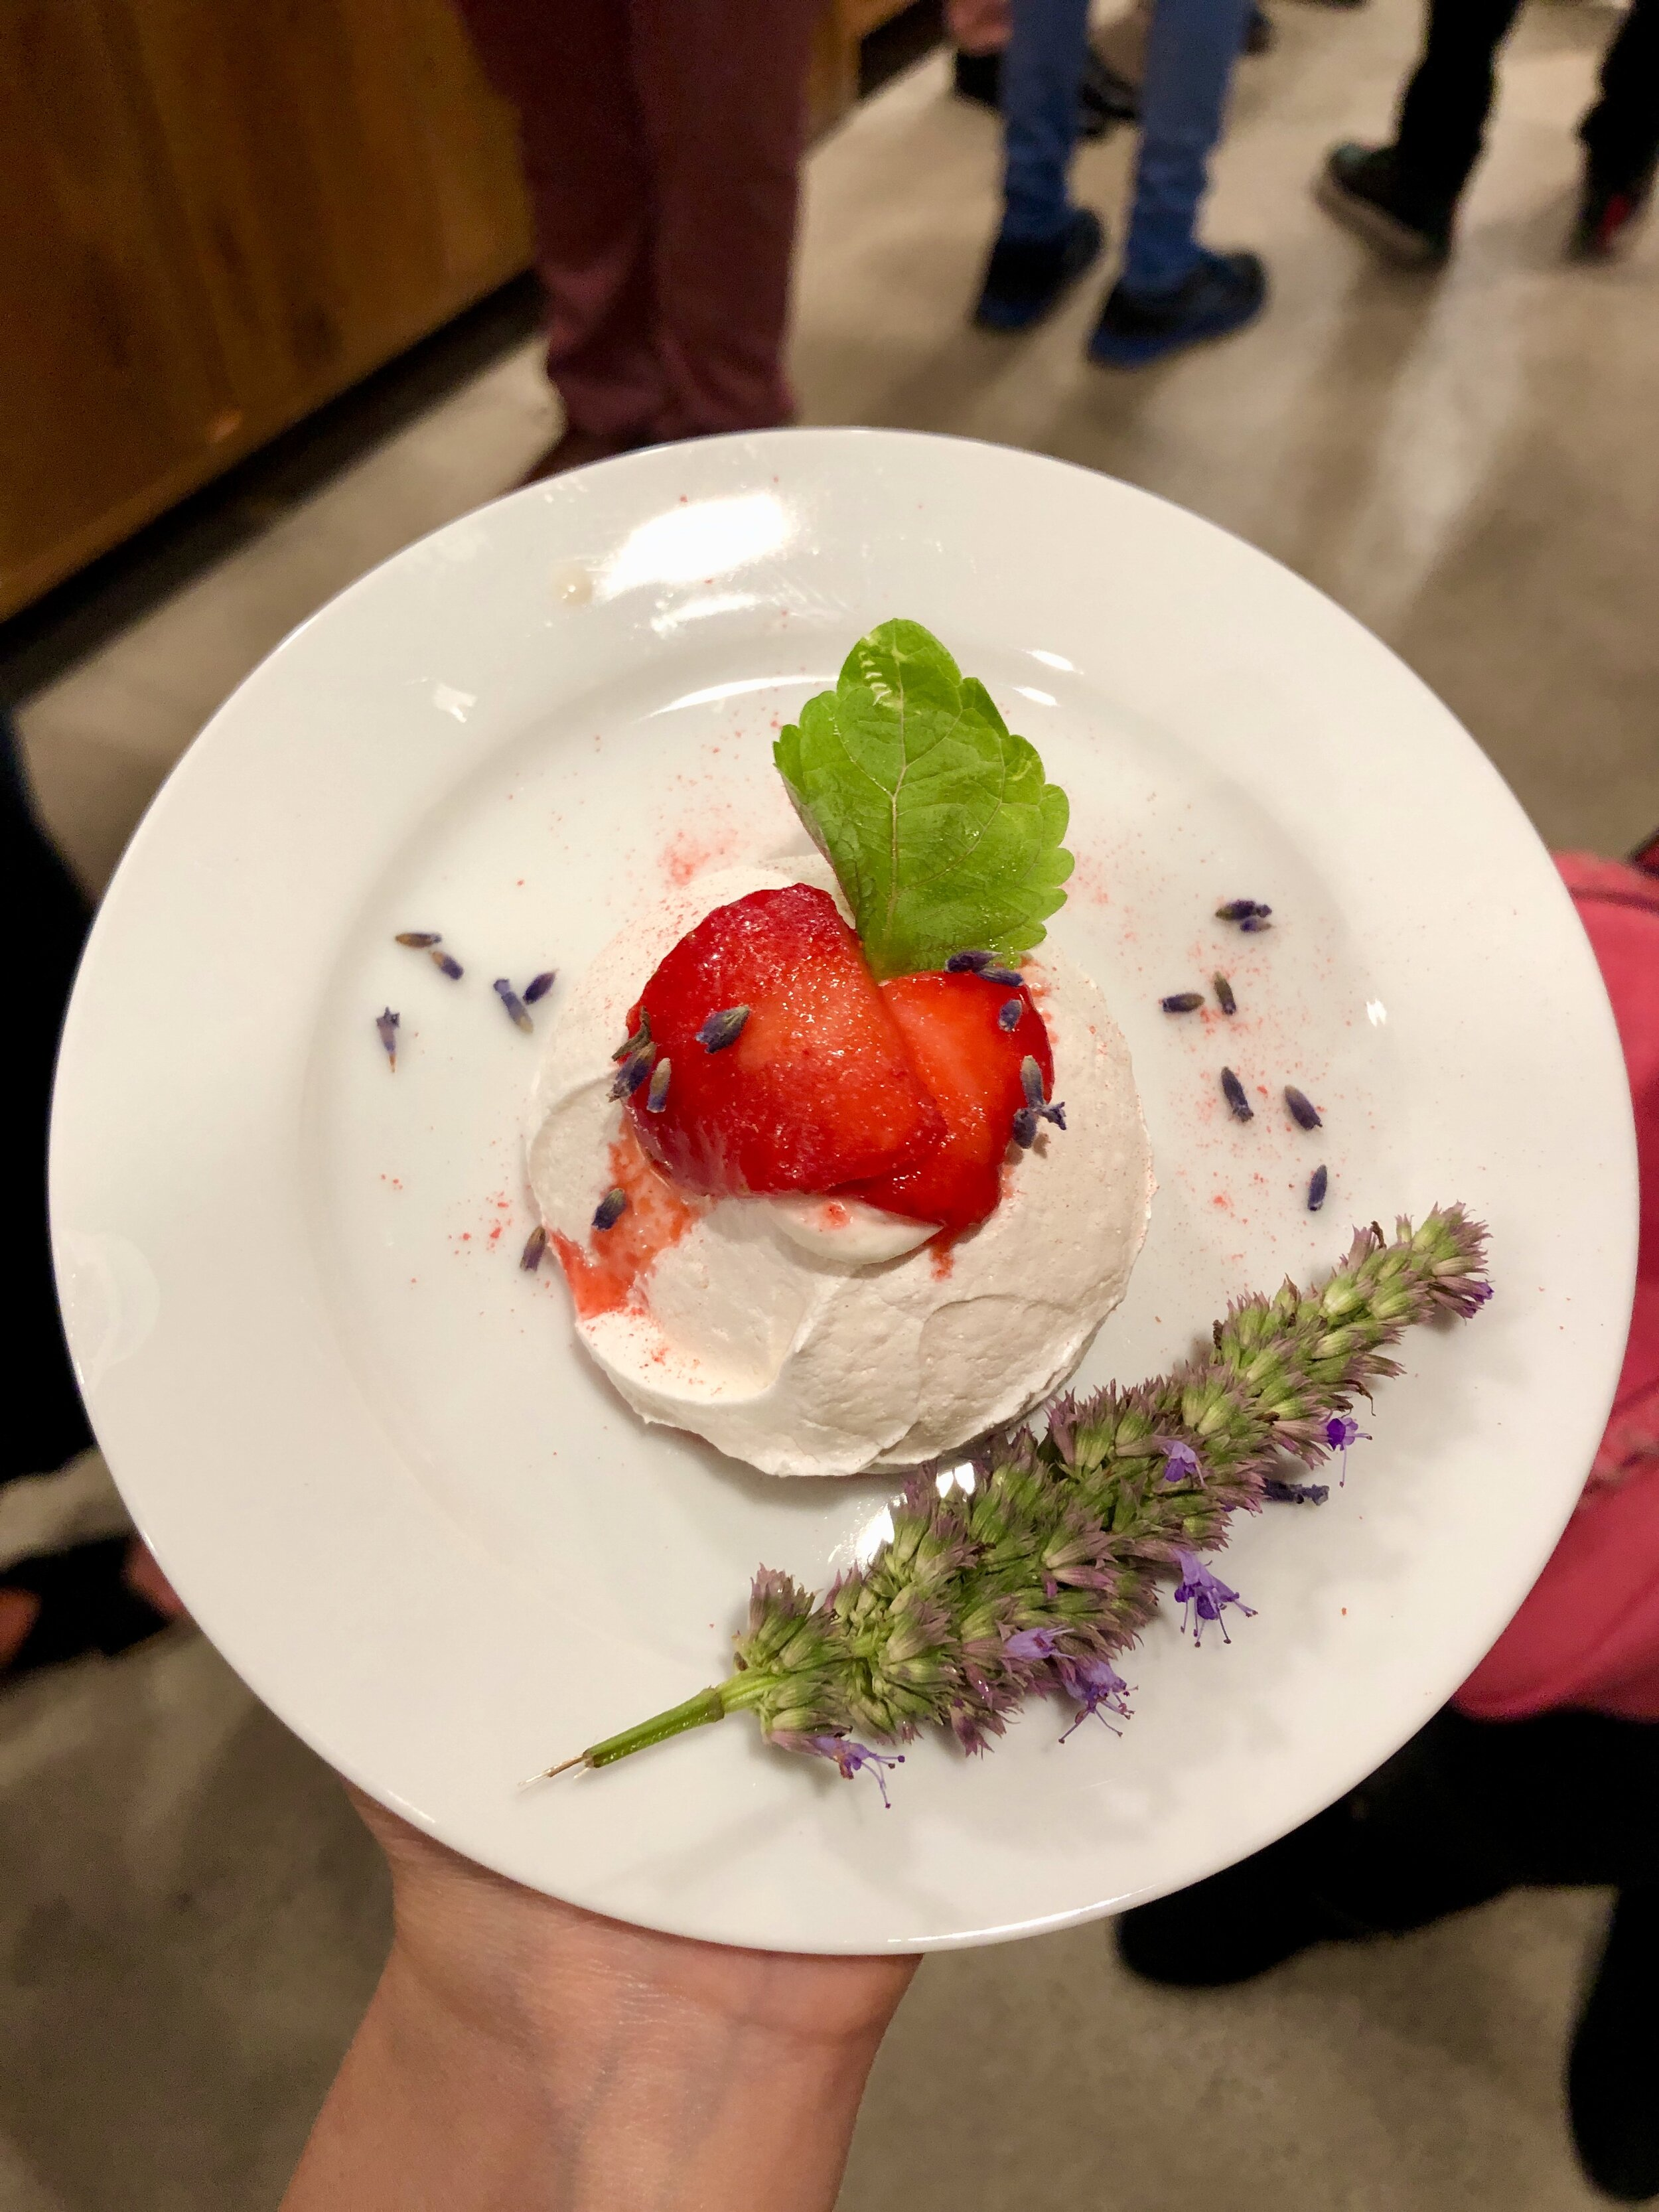 Le Vacherin Fraise by Chef Paola Marocchi, Corporate Pastry Chef for the Tao Group - Cheese used: Fromage Blanc